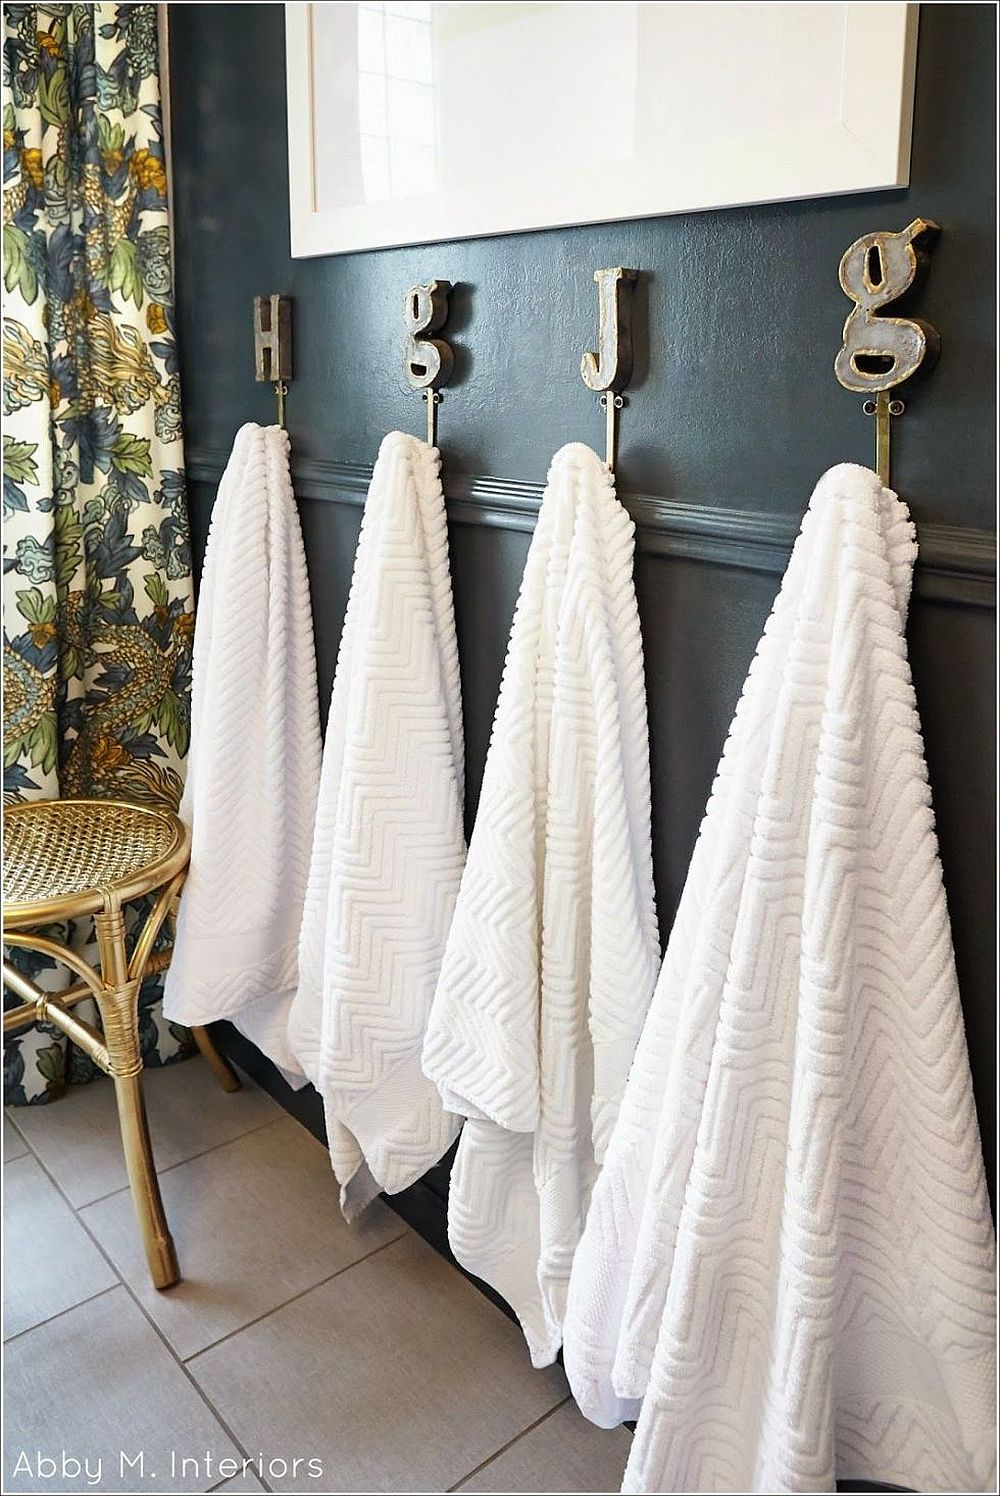 hooks for the modern bathroom from abby m interiors trendy bathroom